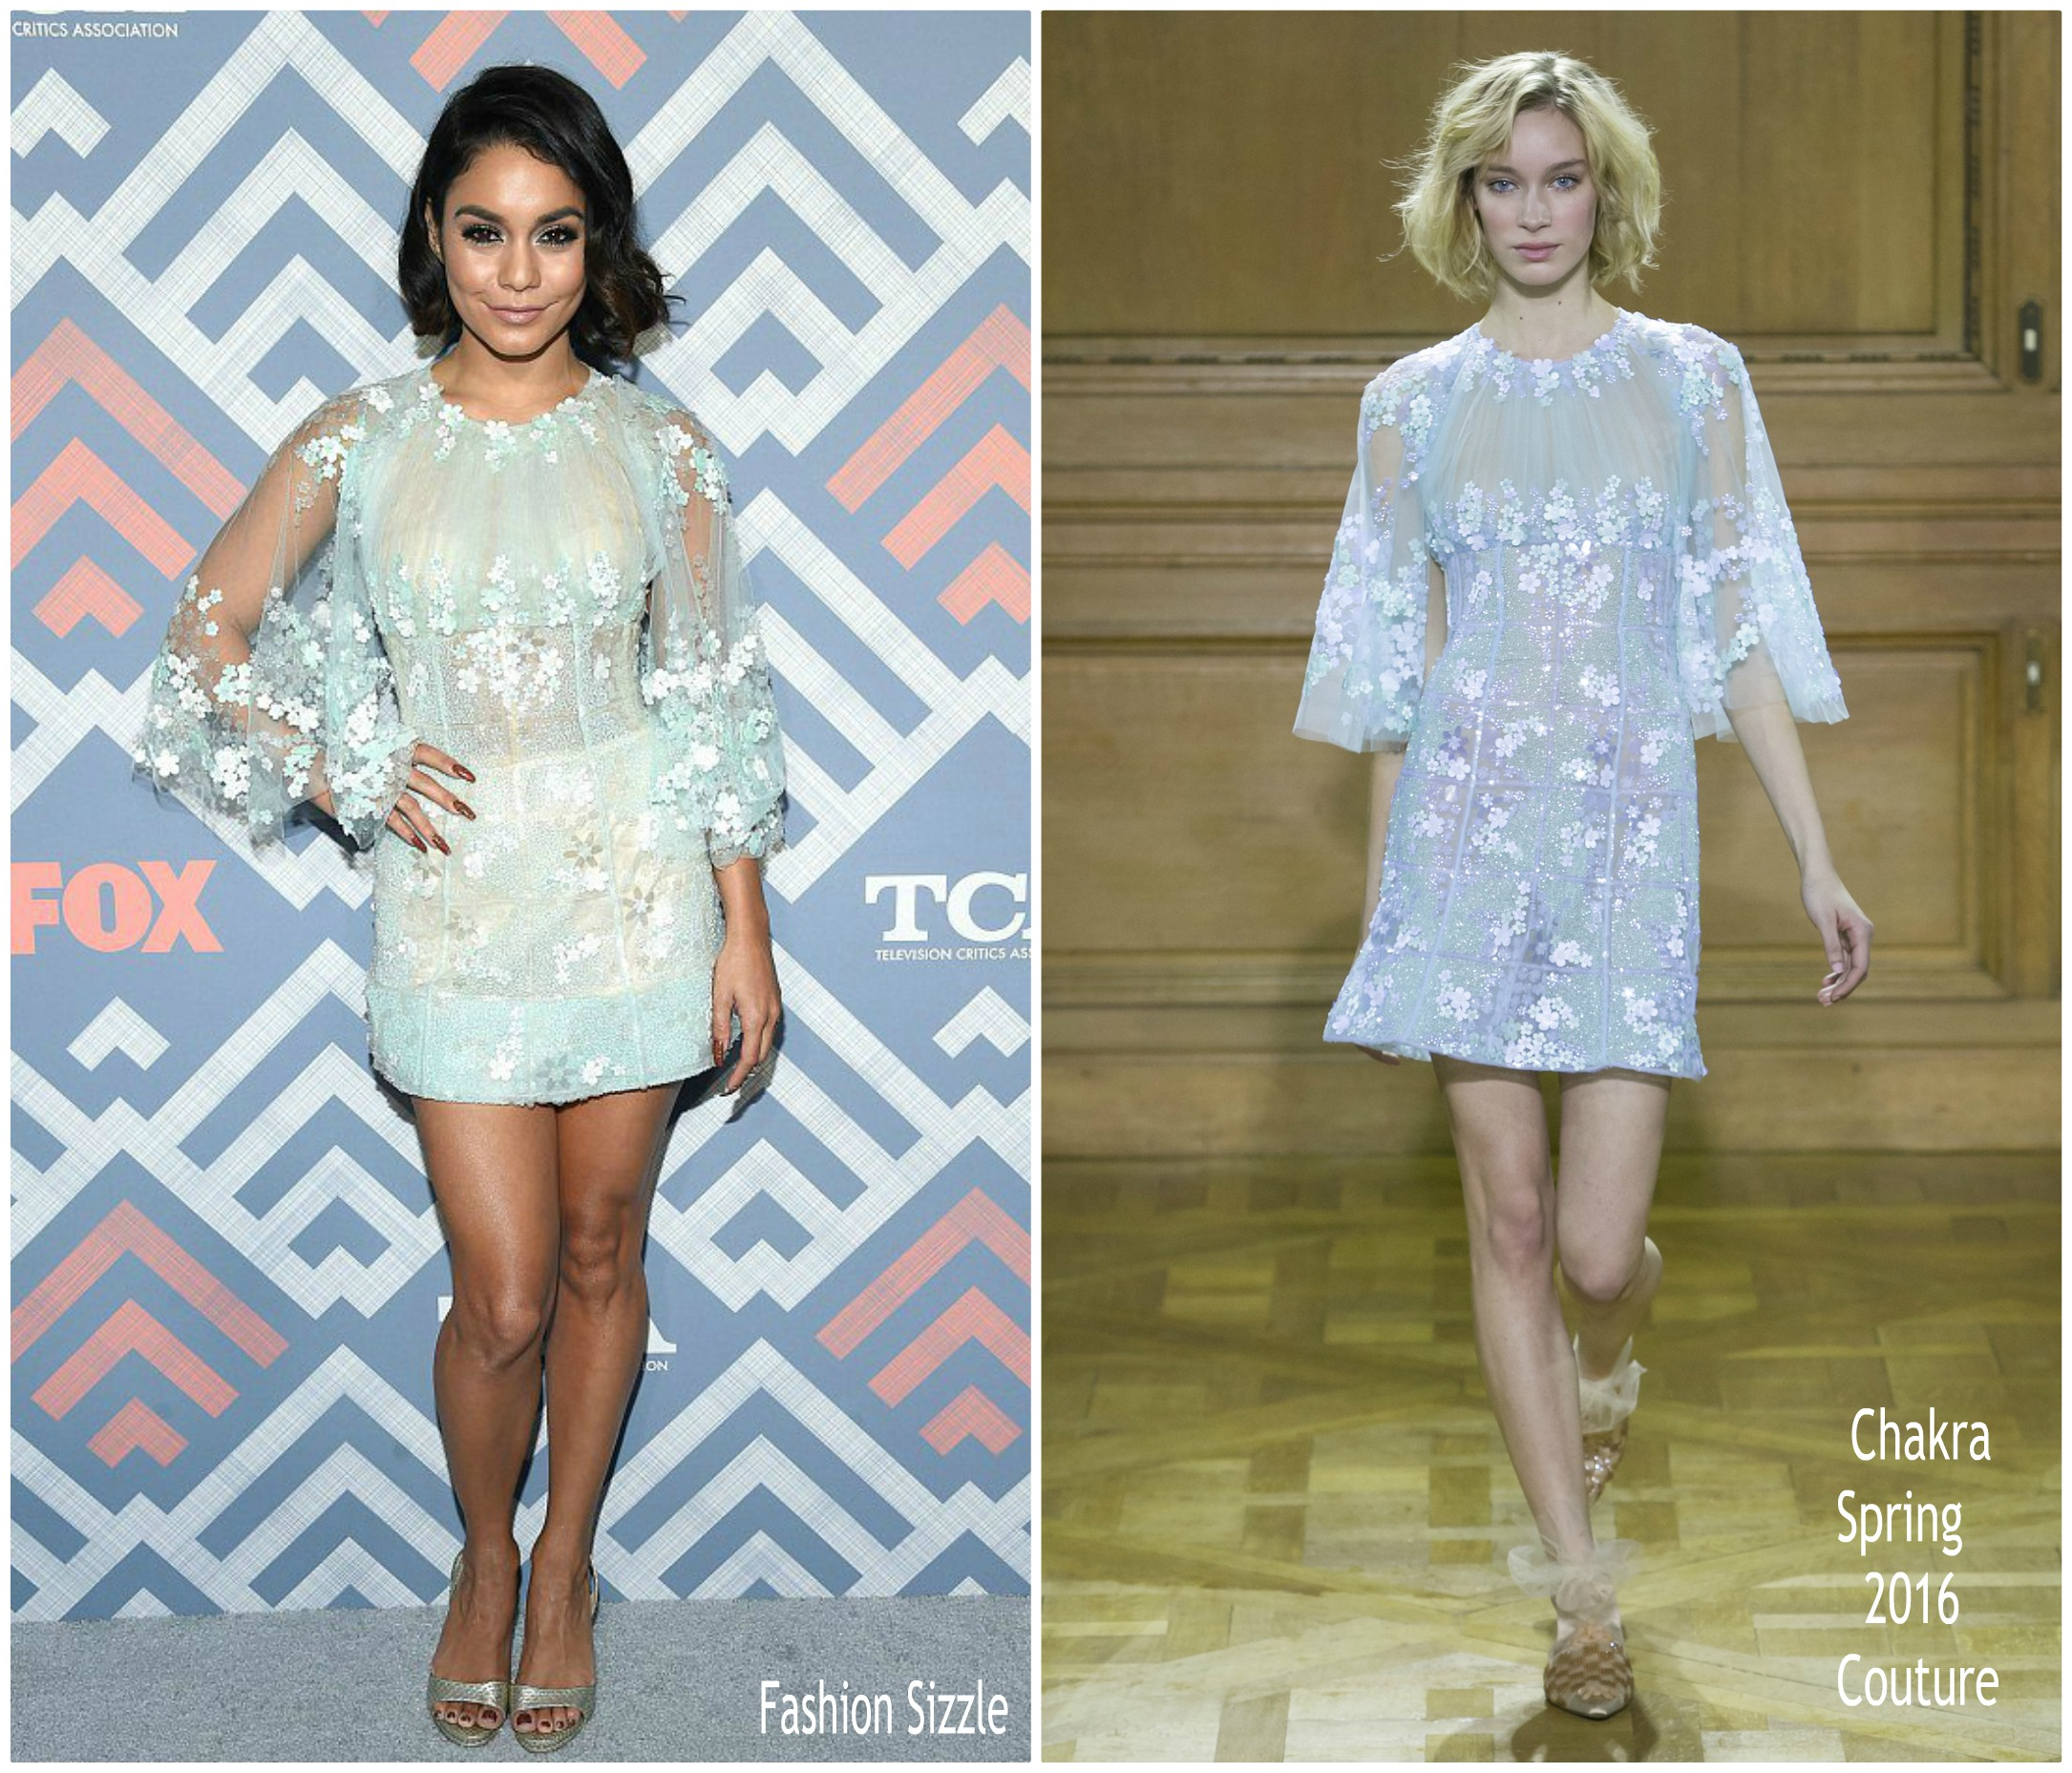 vanessa-hudgens-in-georges-chakra-couture-fox-2017-summer-tca-tour